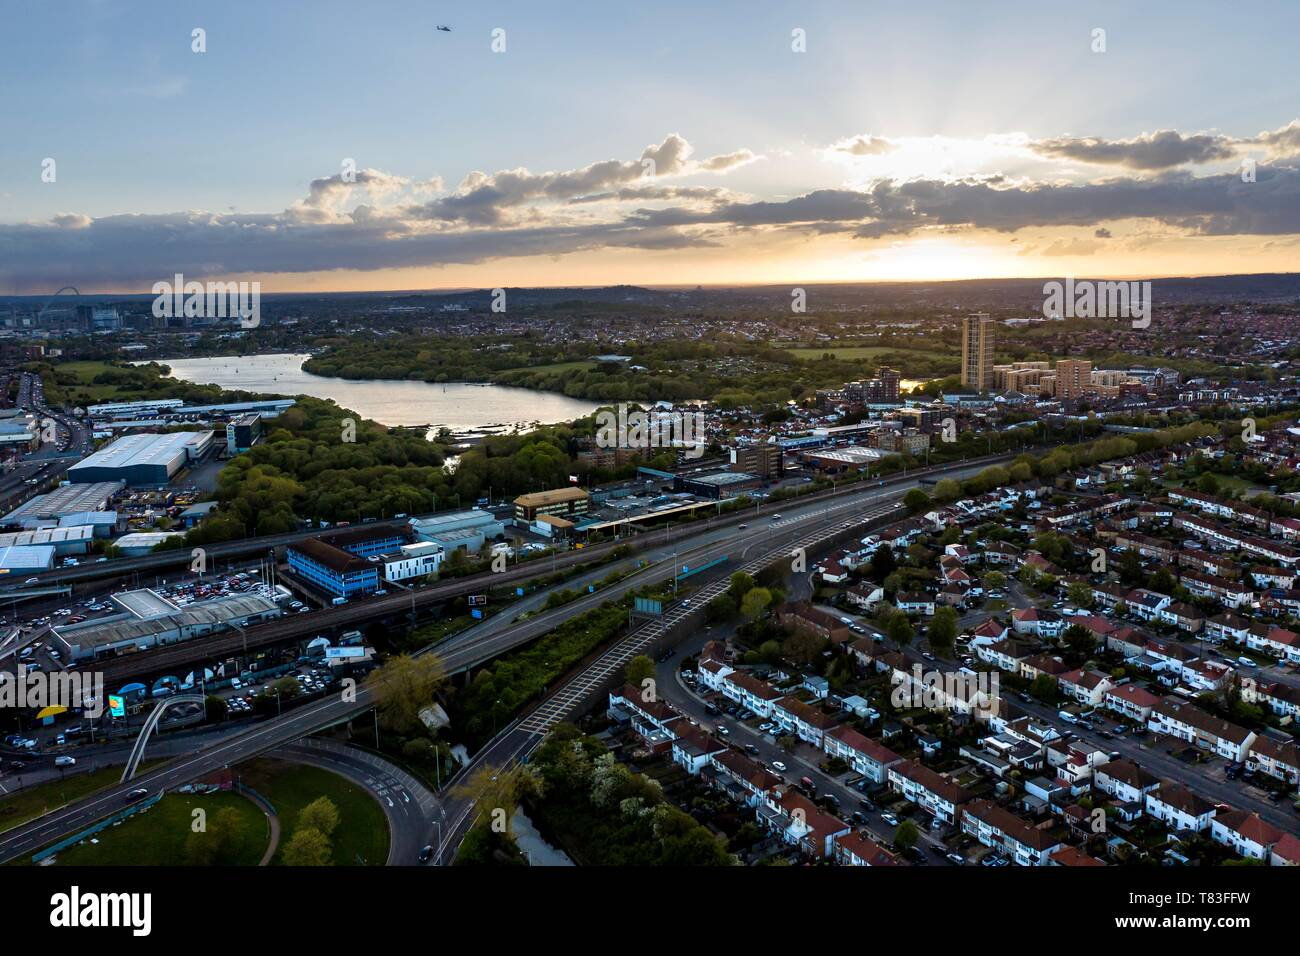 The A406 North Circular road near Brent Cross at sunset. LONDON, UK - Stock Image